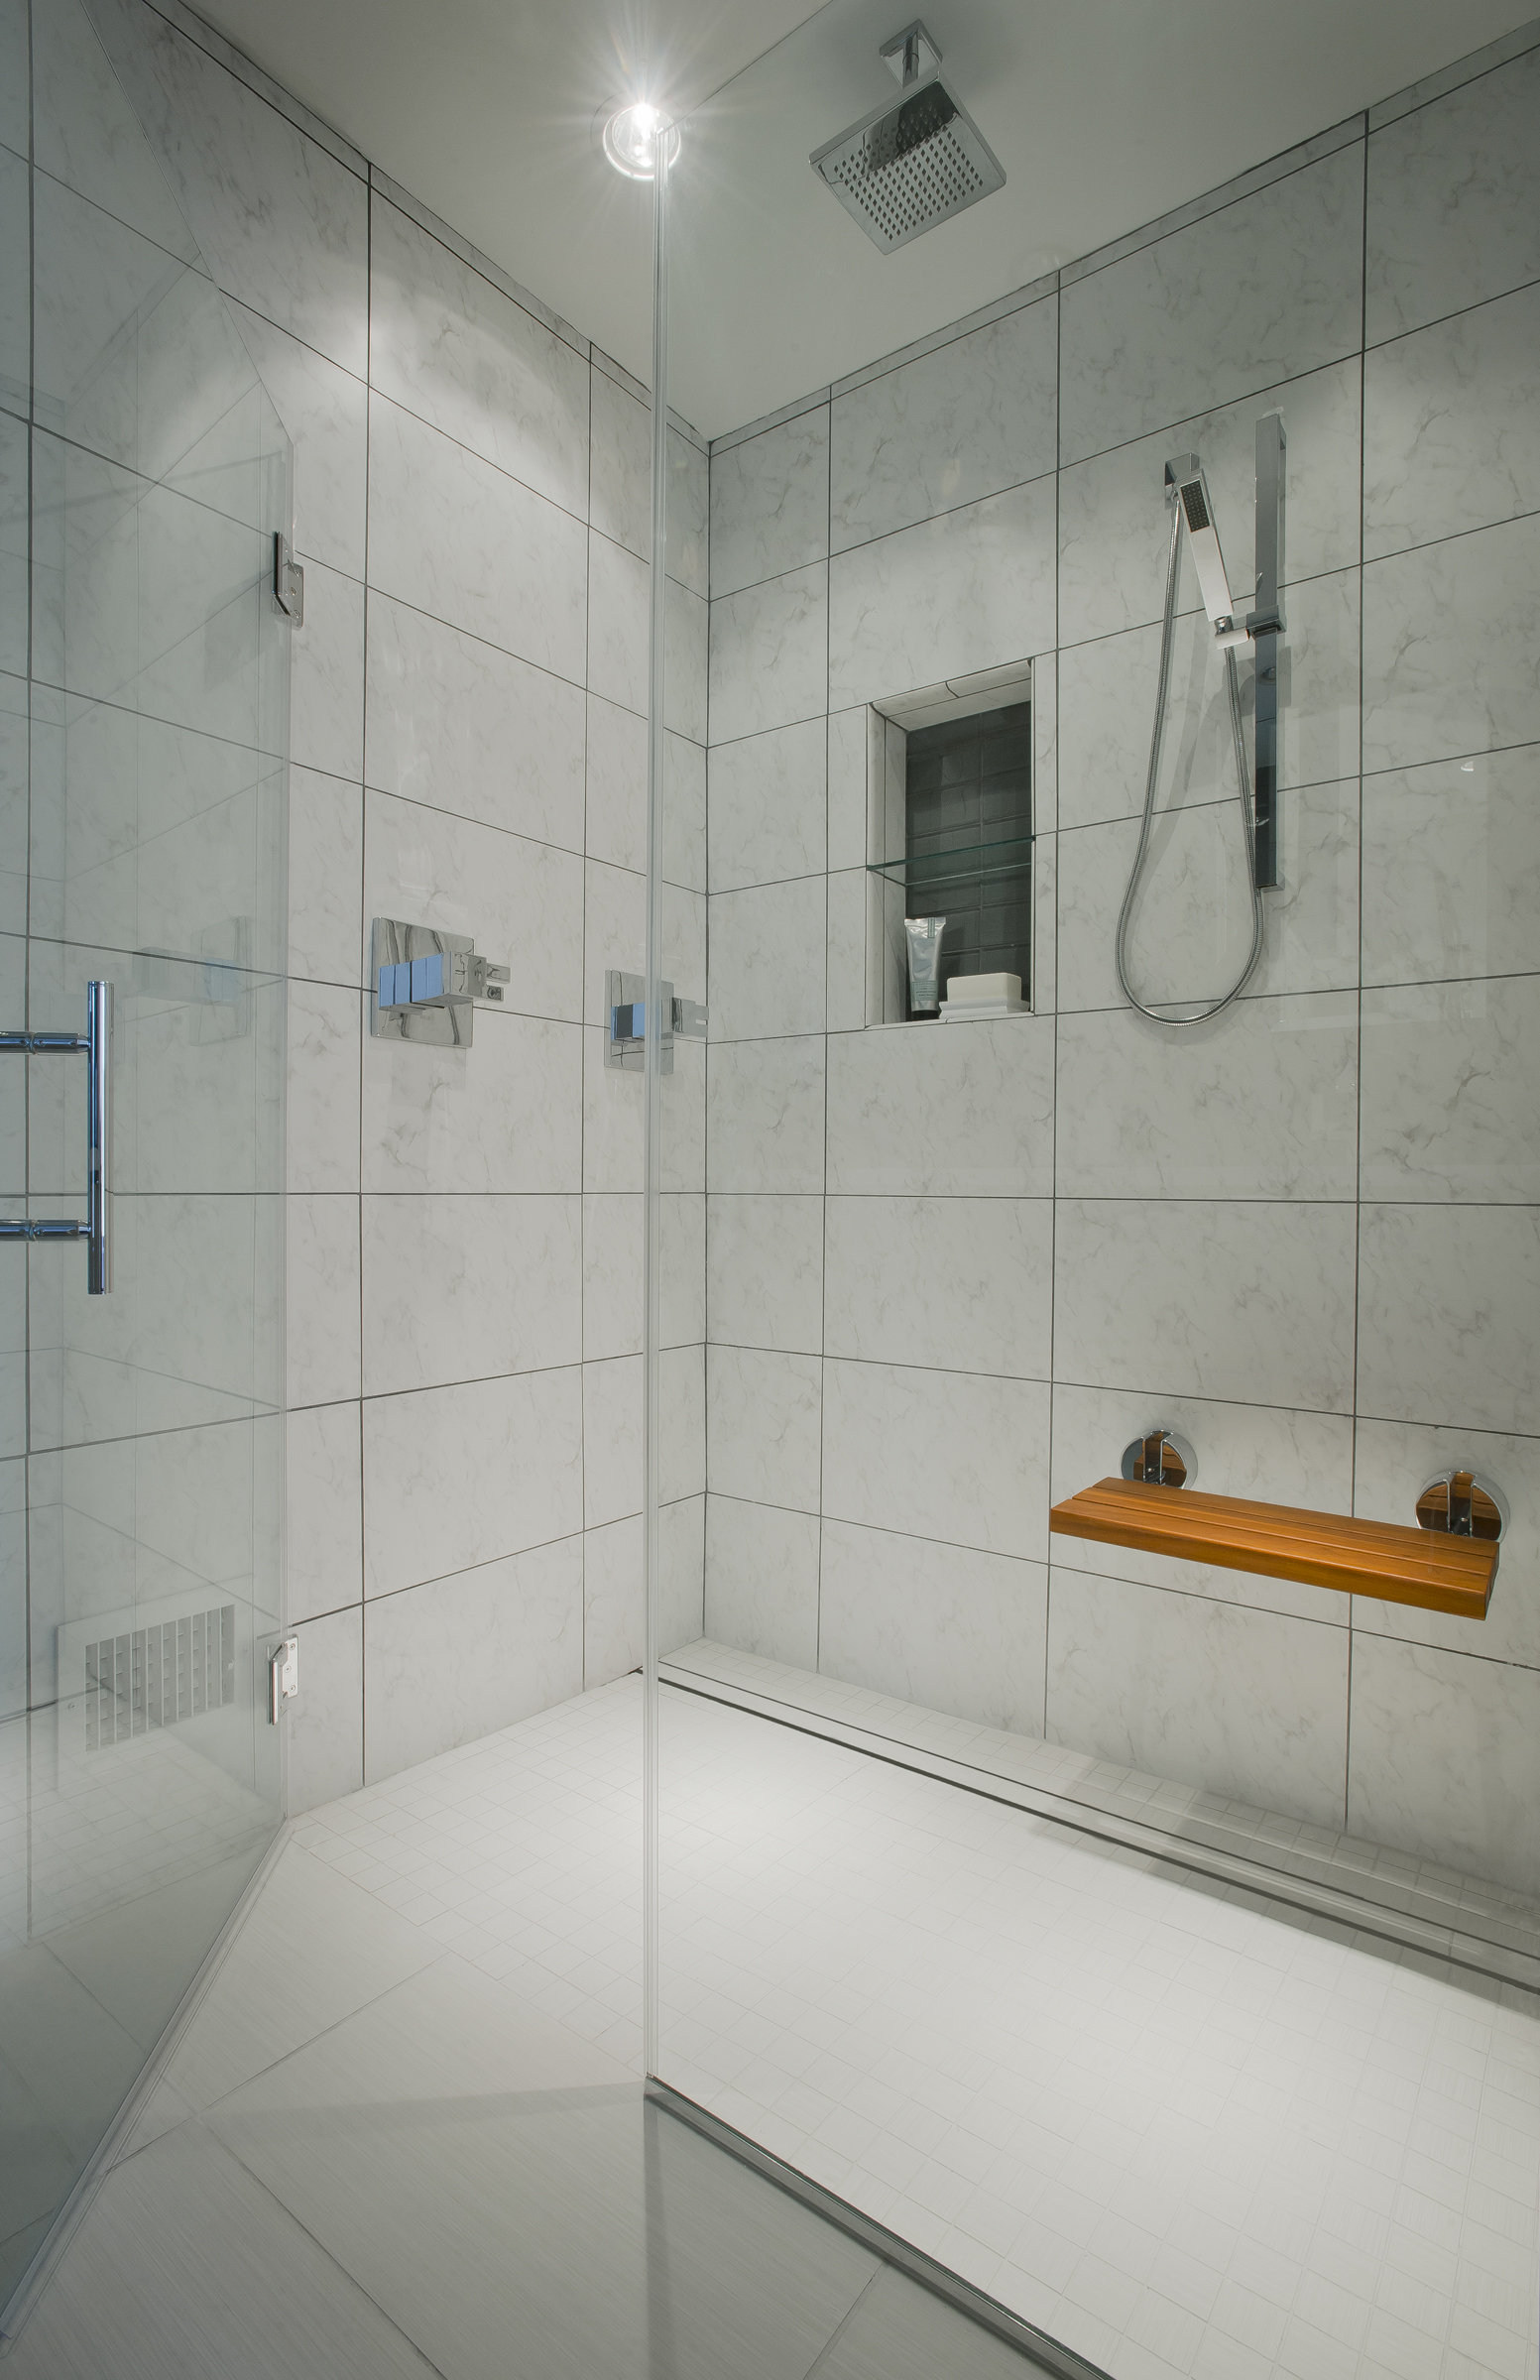 {New shower in award-winning master bathroom project. Curbless shower with glass doors, folding teak seat, rain shower head and wand all make for a great shower experience.}